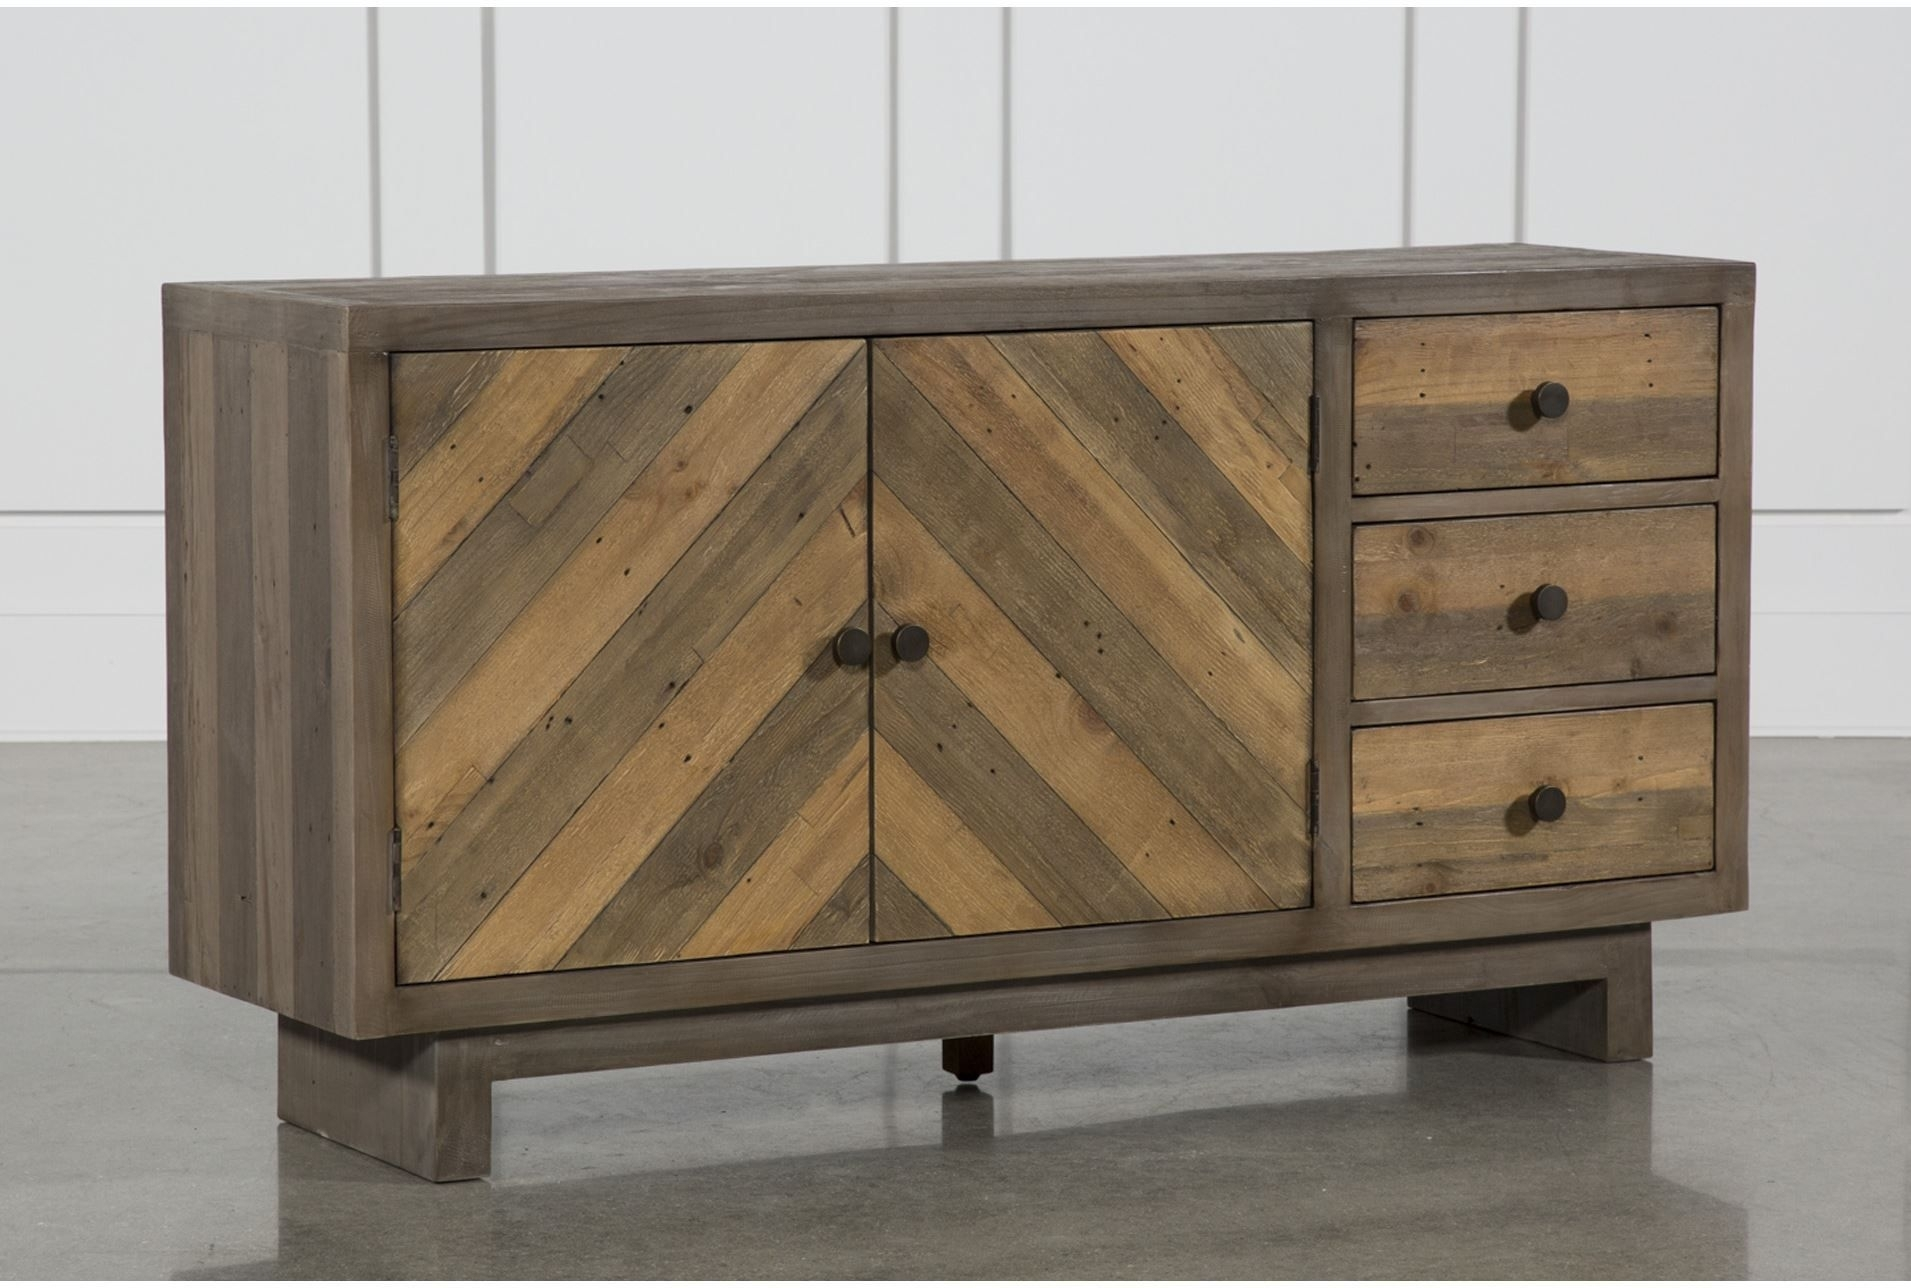 Otb Aged Pine 3 Drawer/2 Door Sideboard, Brown | Pinterest | Products Pertaining To Oil Pale Finish 3 Door Sideboards (View 20 of 30)